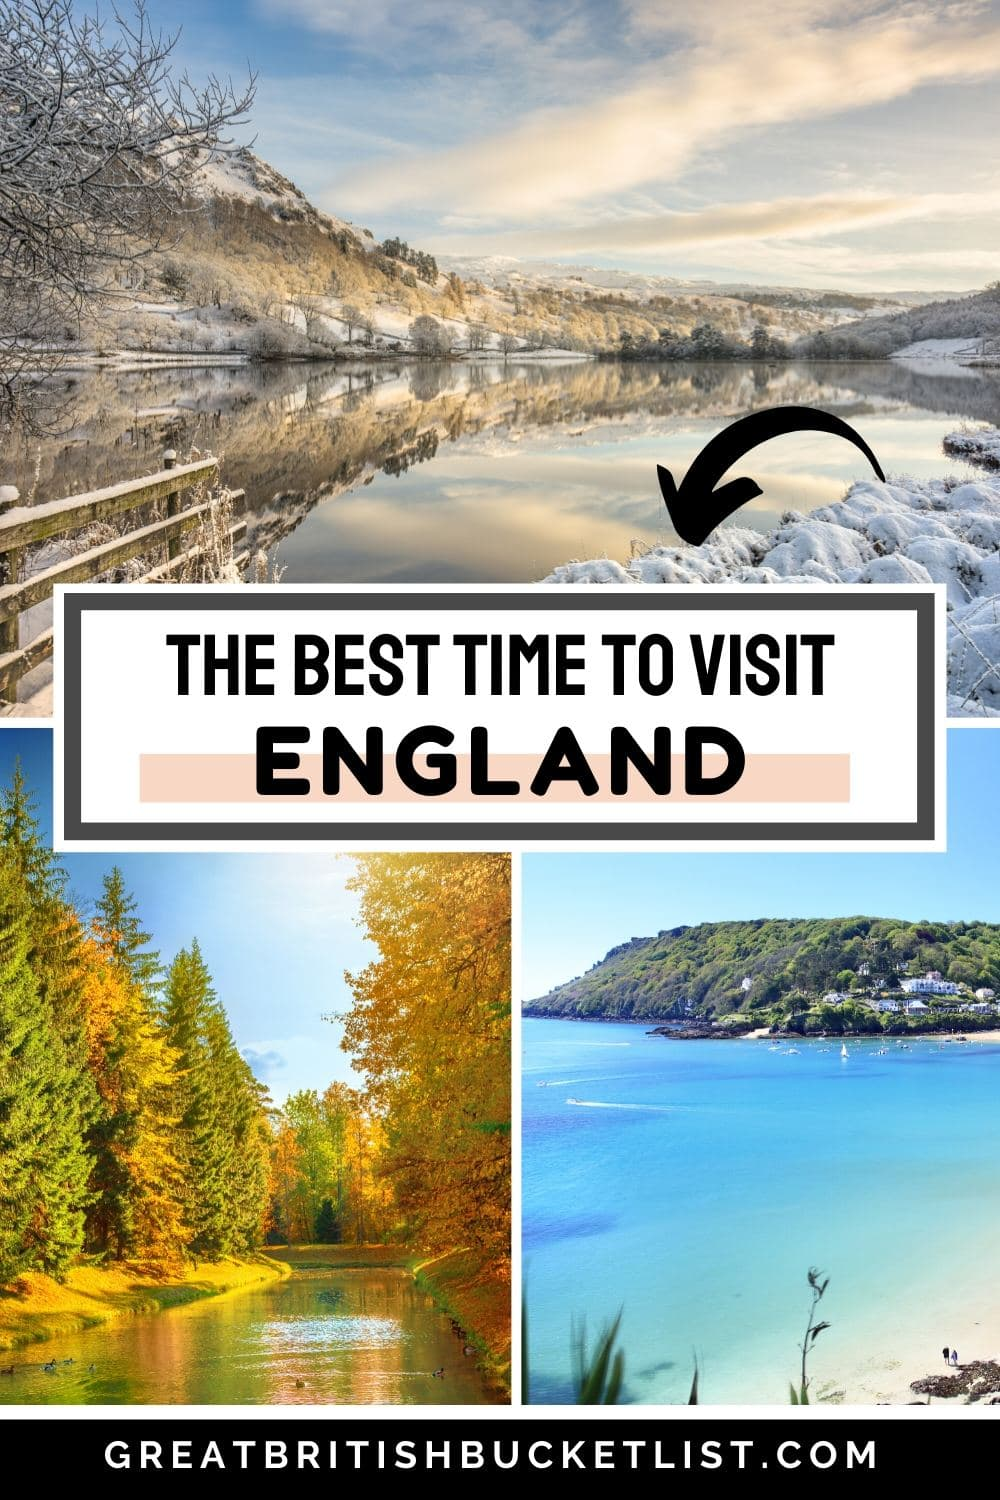 The Best Time To Visit England